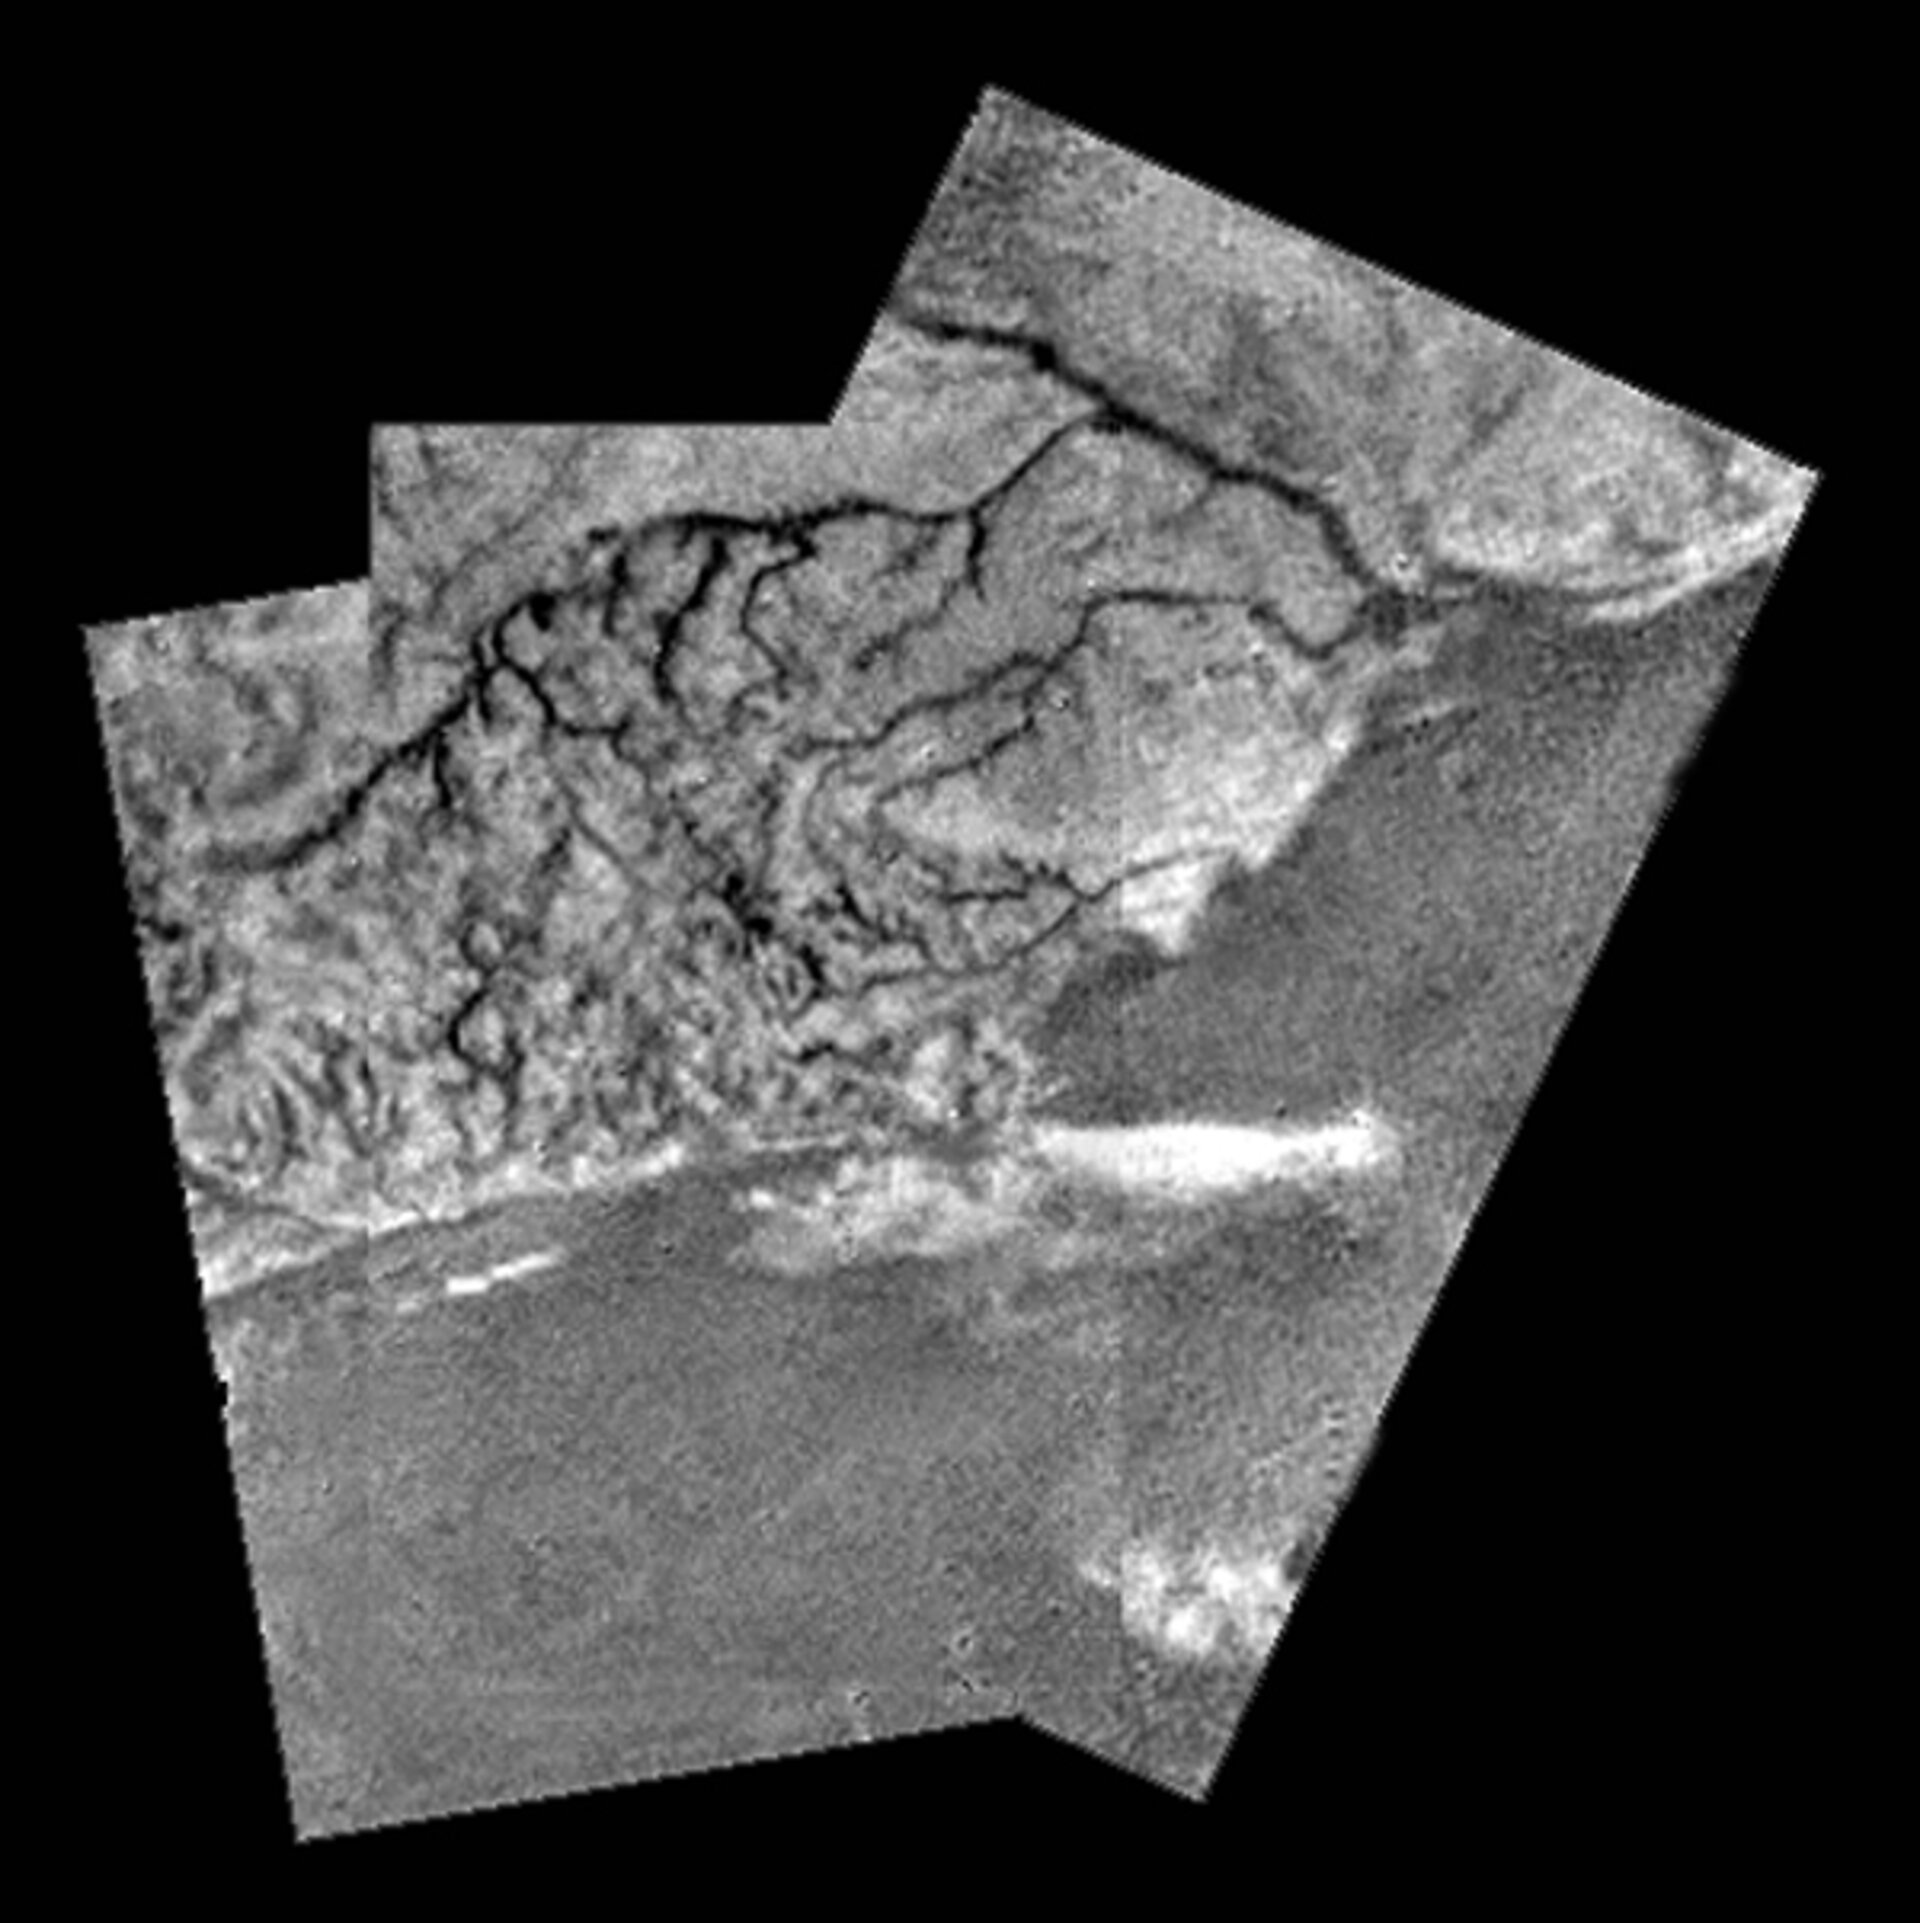 Mosaic of river channel and ridge area on Titan